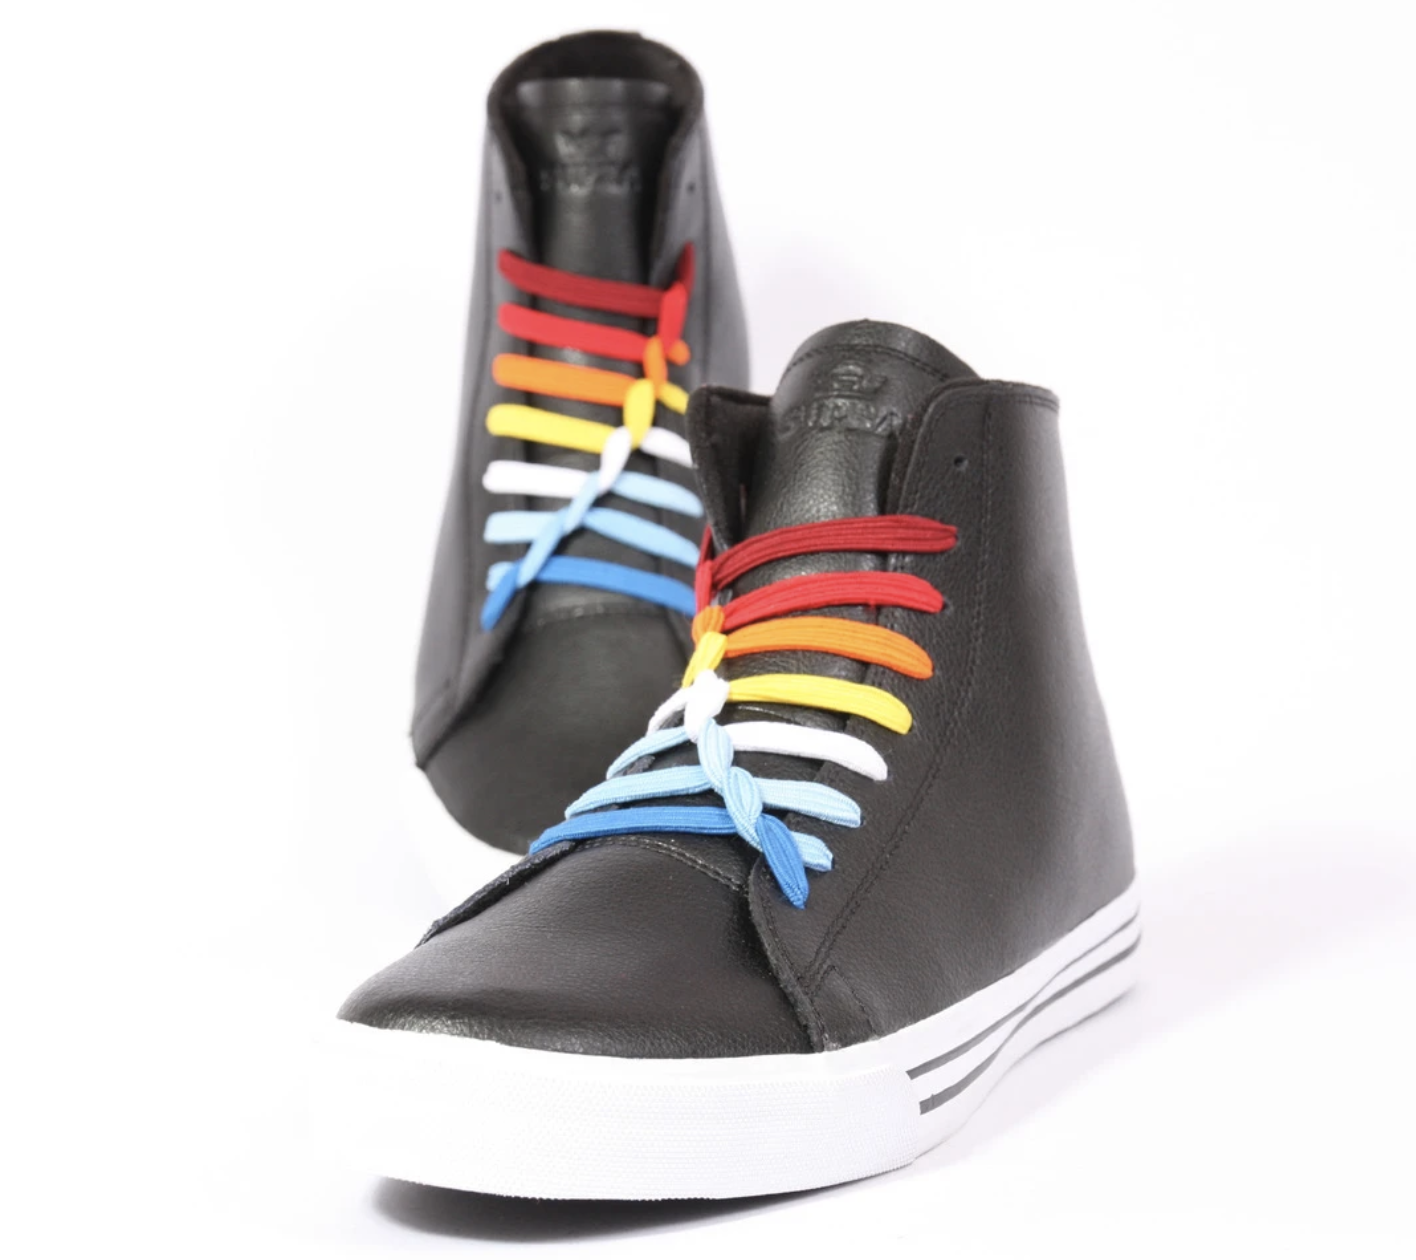 A pair of sneakers with rainbow U-laces